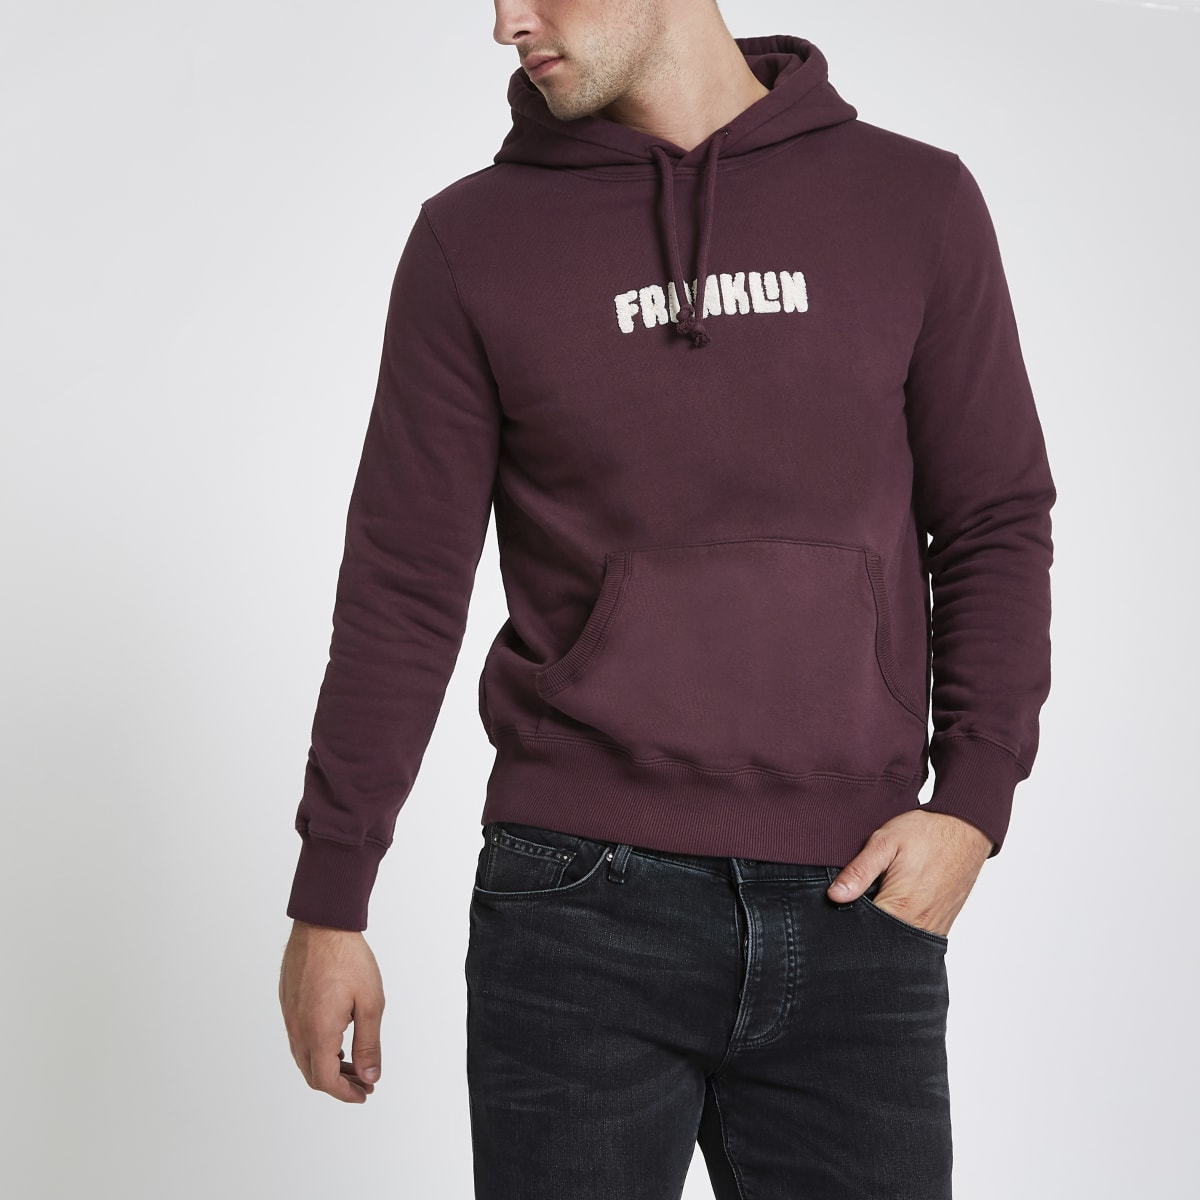 Franklin & Marshall - Bordeauxrode hoodie